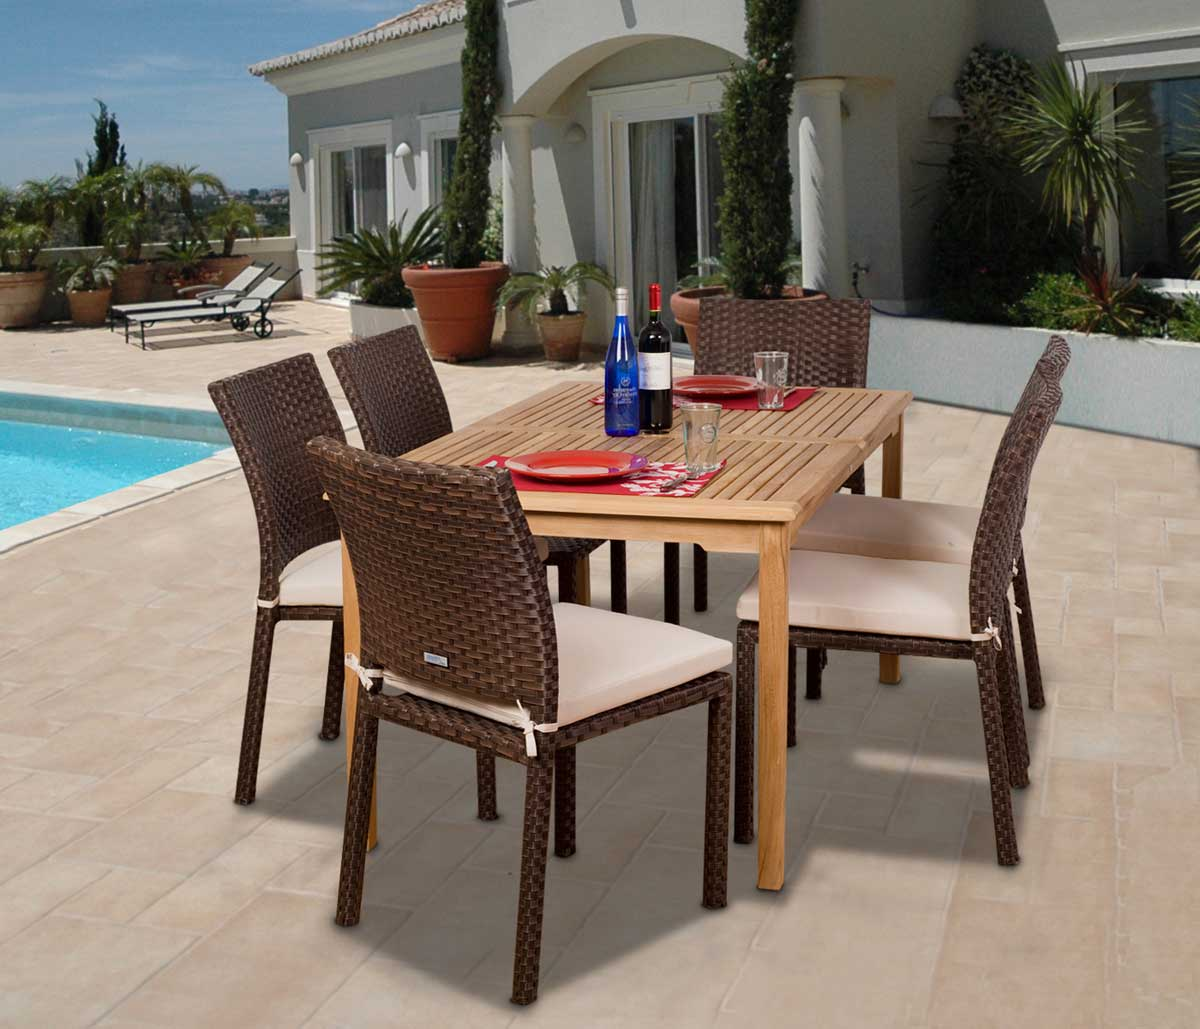 Luxemburg 7 Piece Teak Wicker Dining Set Outdoor Patio Classic Design  Modern Design Style Synthetic Durable Part 86